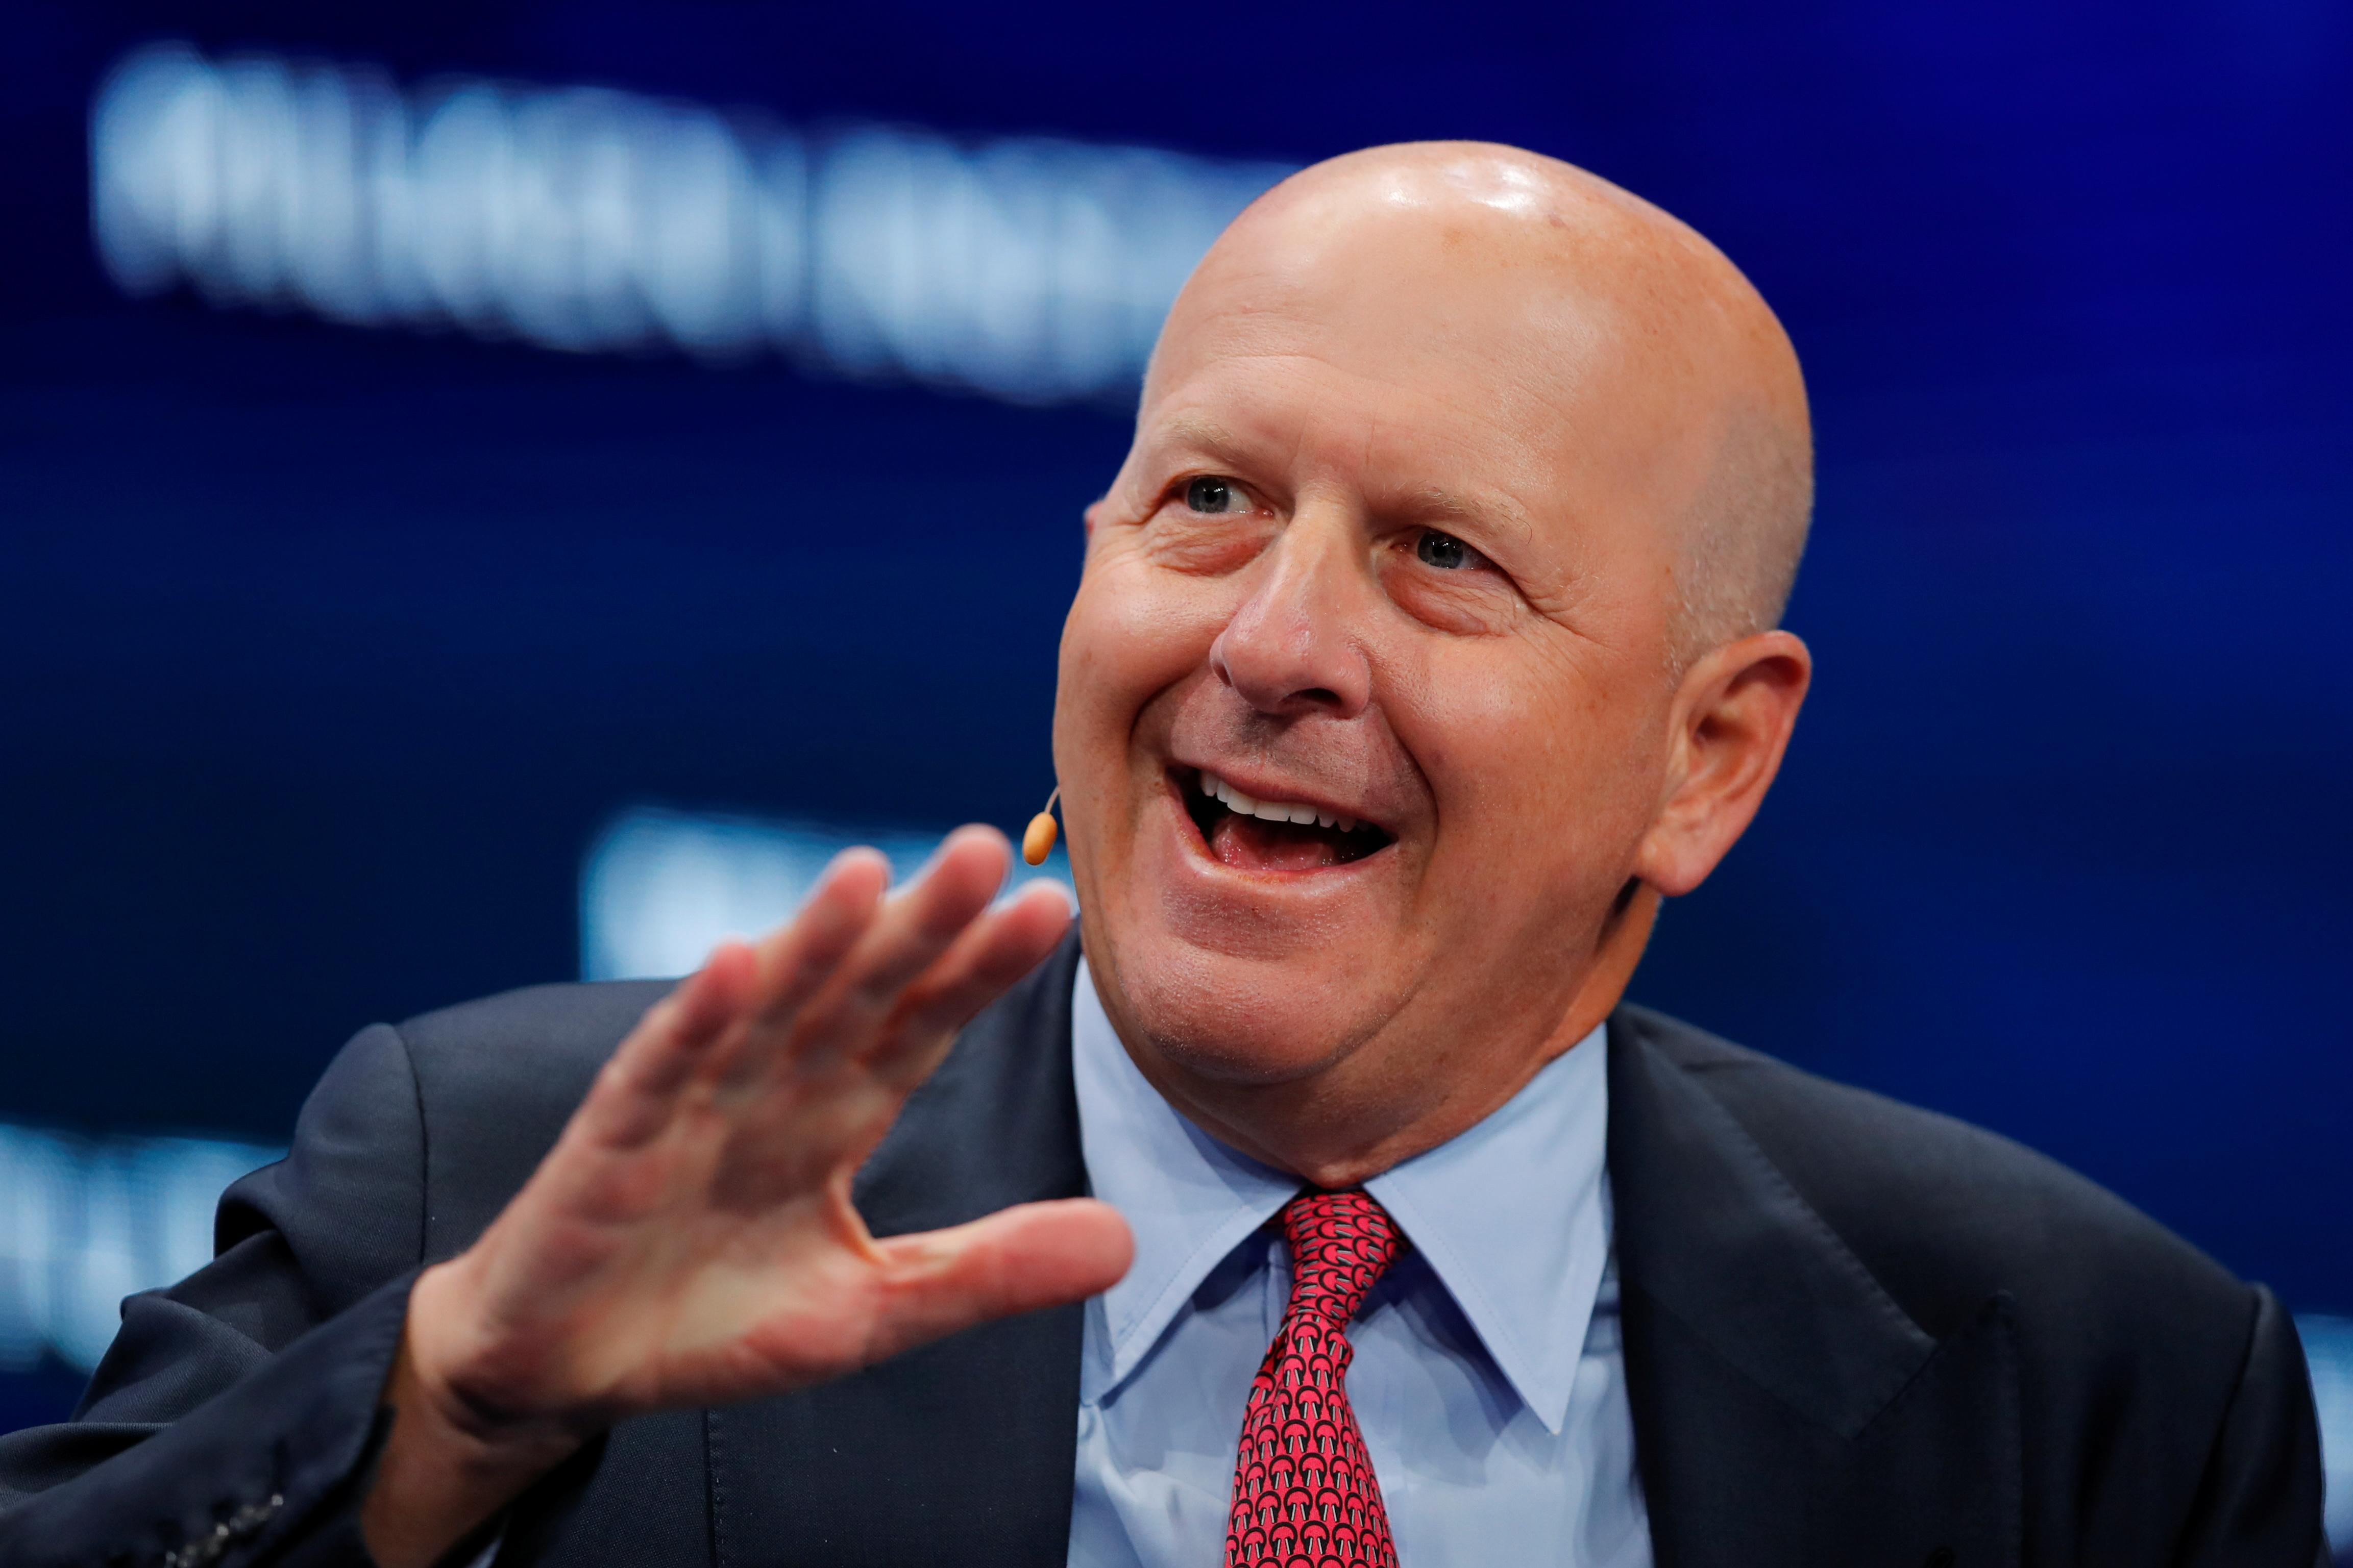 Goldman Sachs CEO defends work on failed WeWork IPO